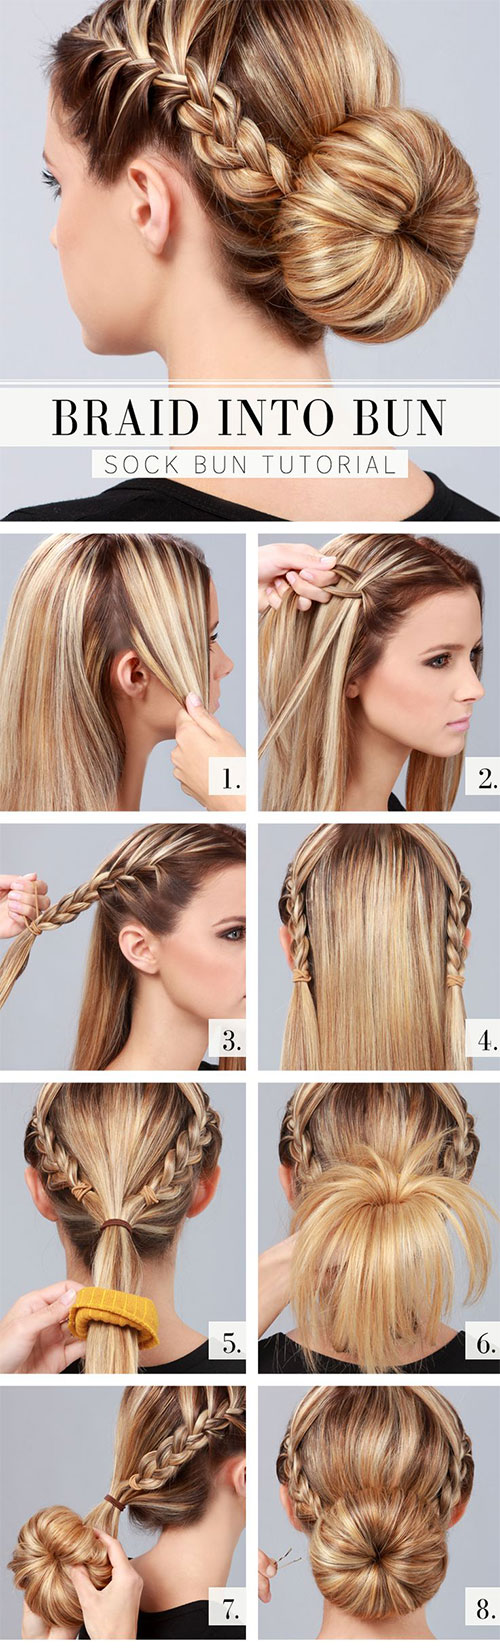 15-Step-By-Step-Summer-Hairstyle-Tutorials-For-Beginners-Learners-2015-2